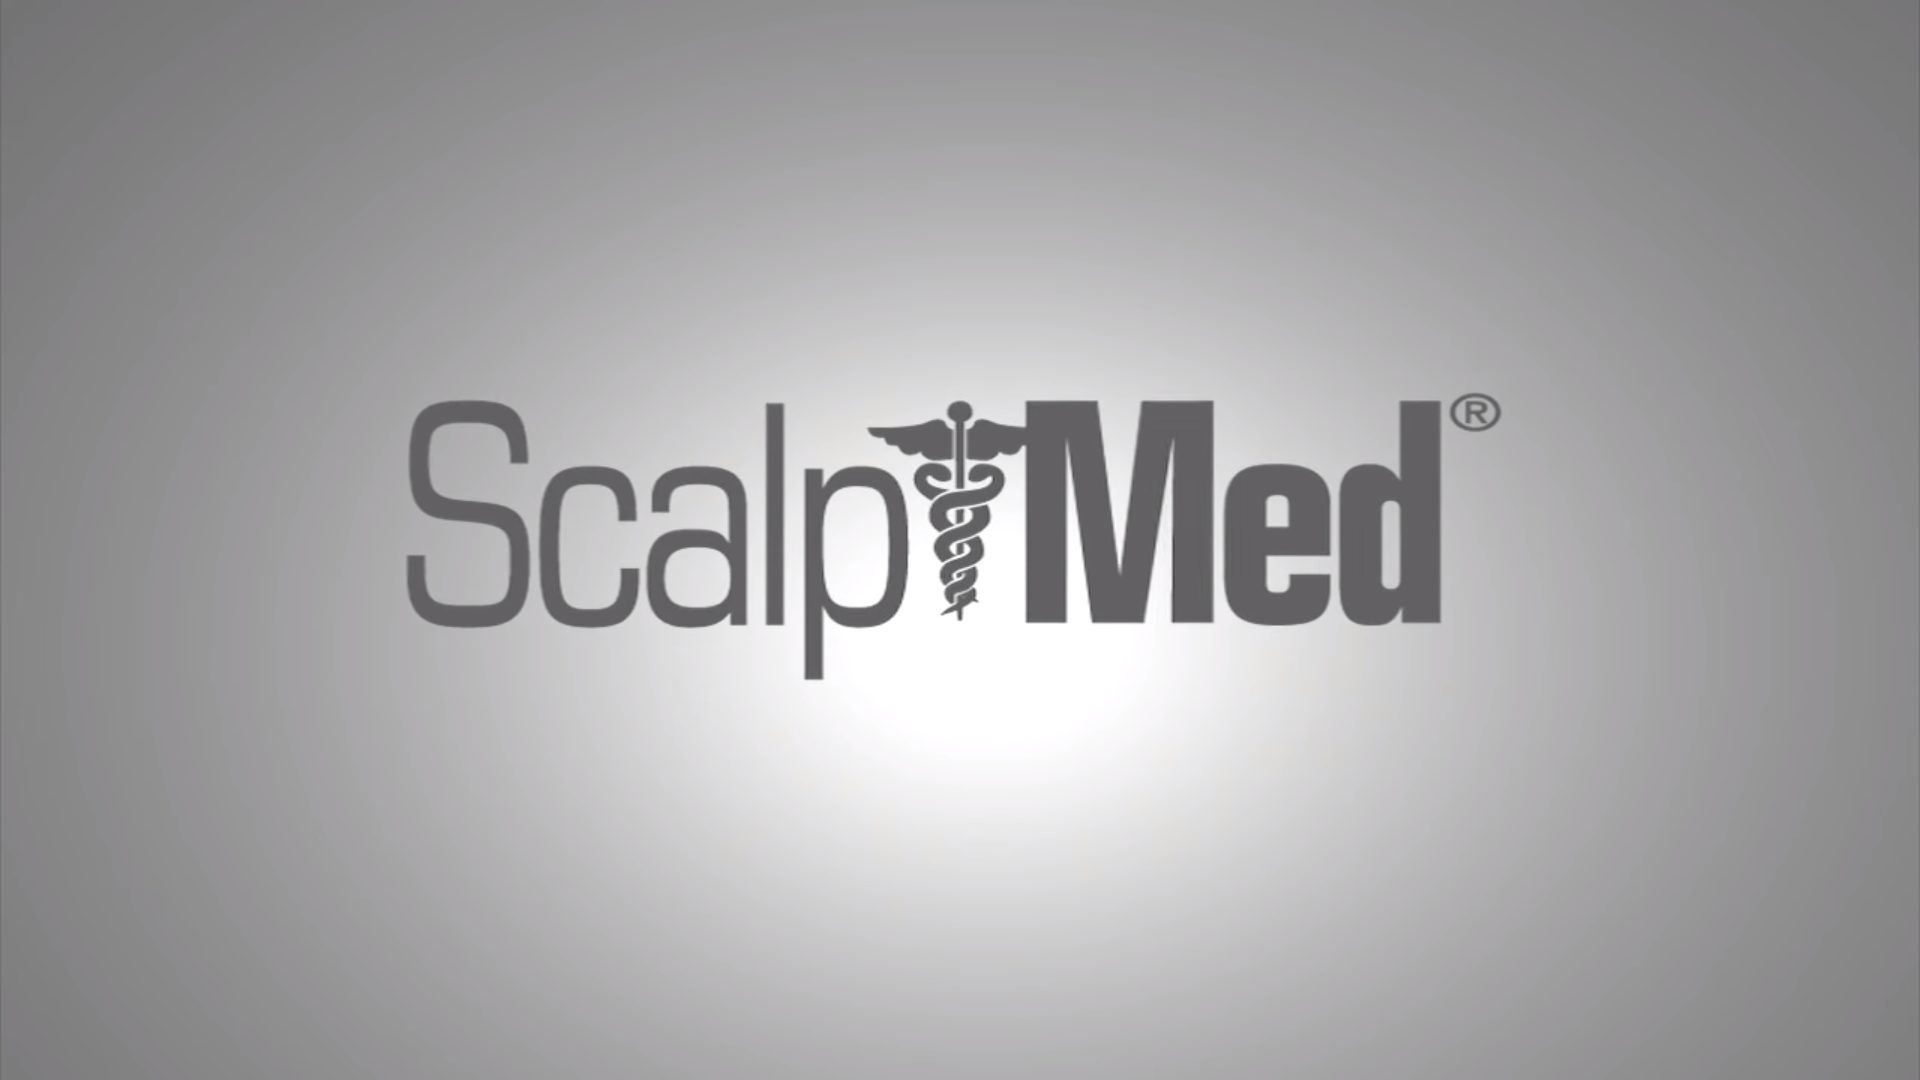 Scalp Med products